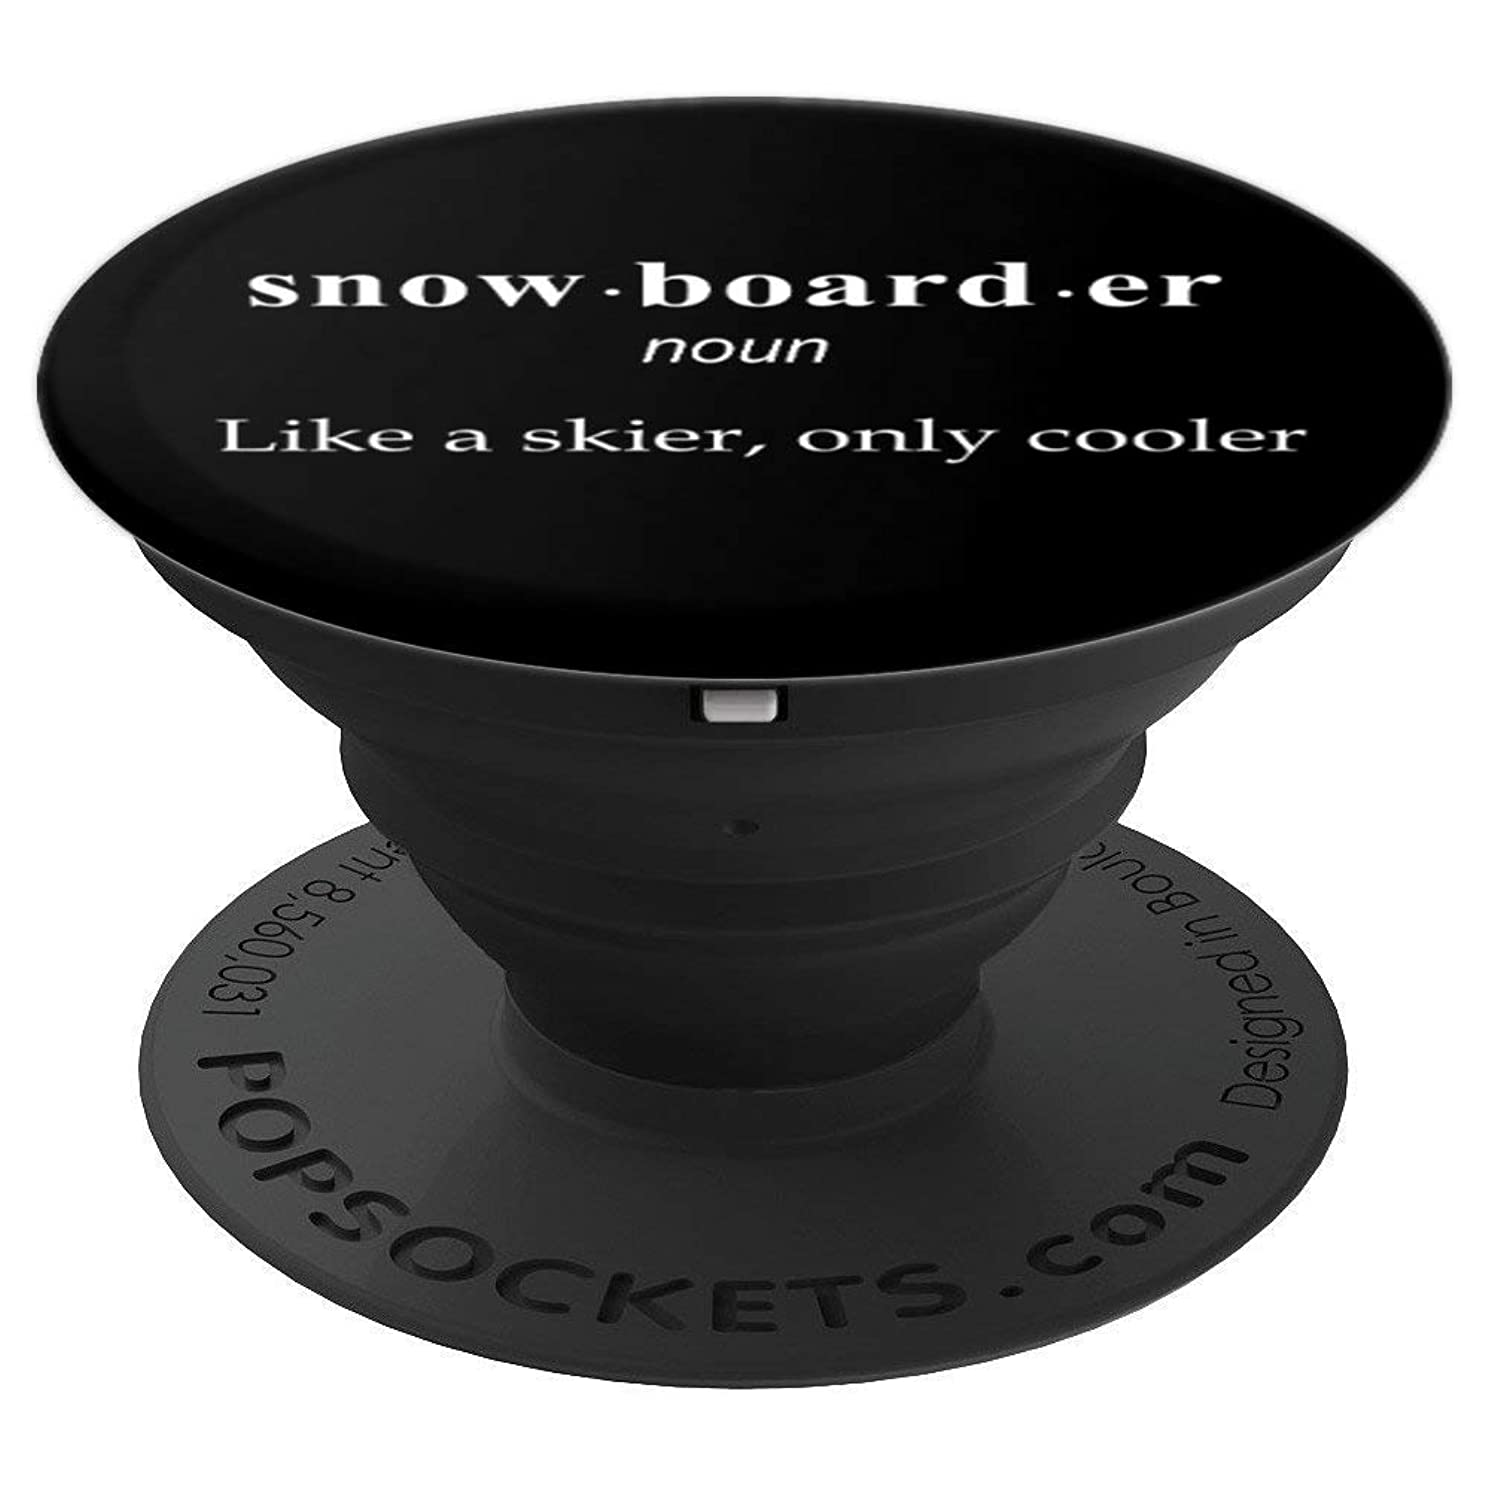 Cool Snowboarding Definition Boarding Men Women Perfect Gift - PopSockets Grip and Stand for Phones and Tablets